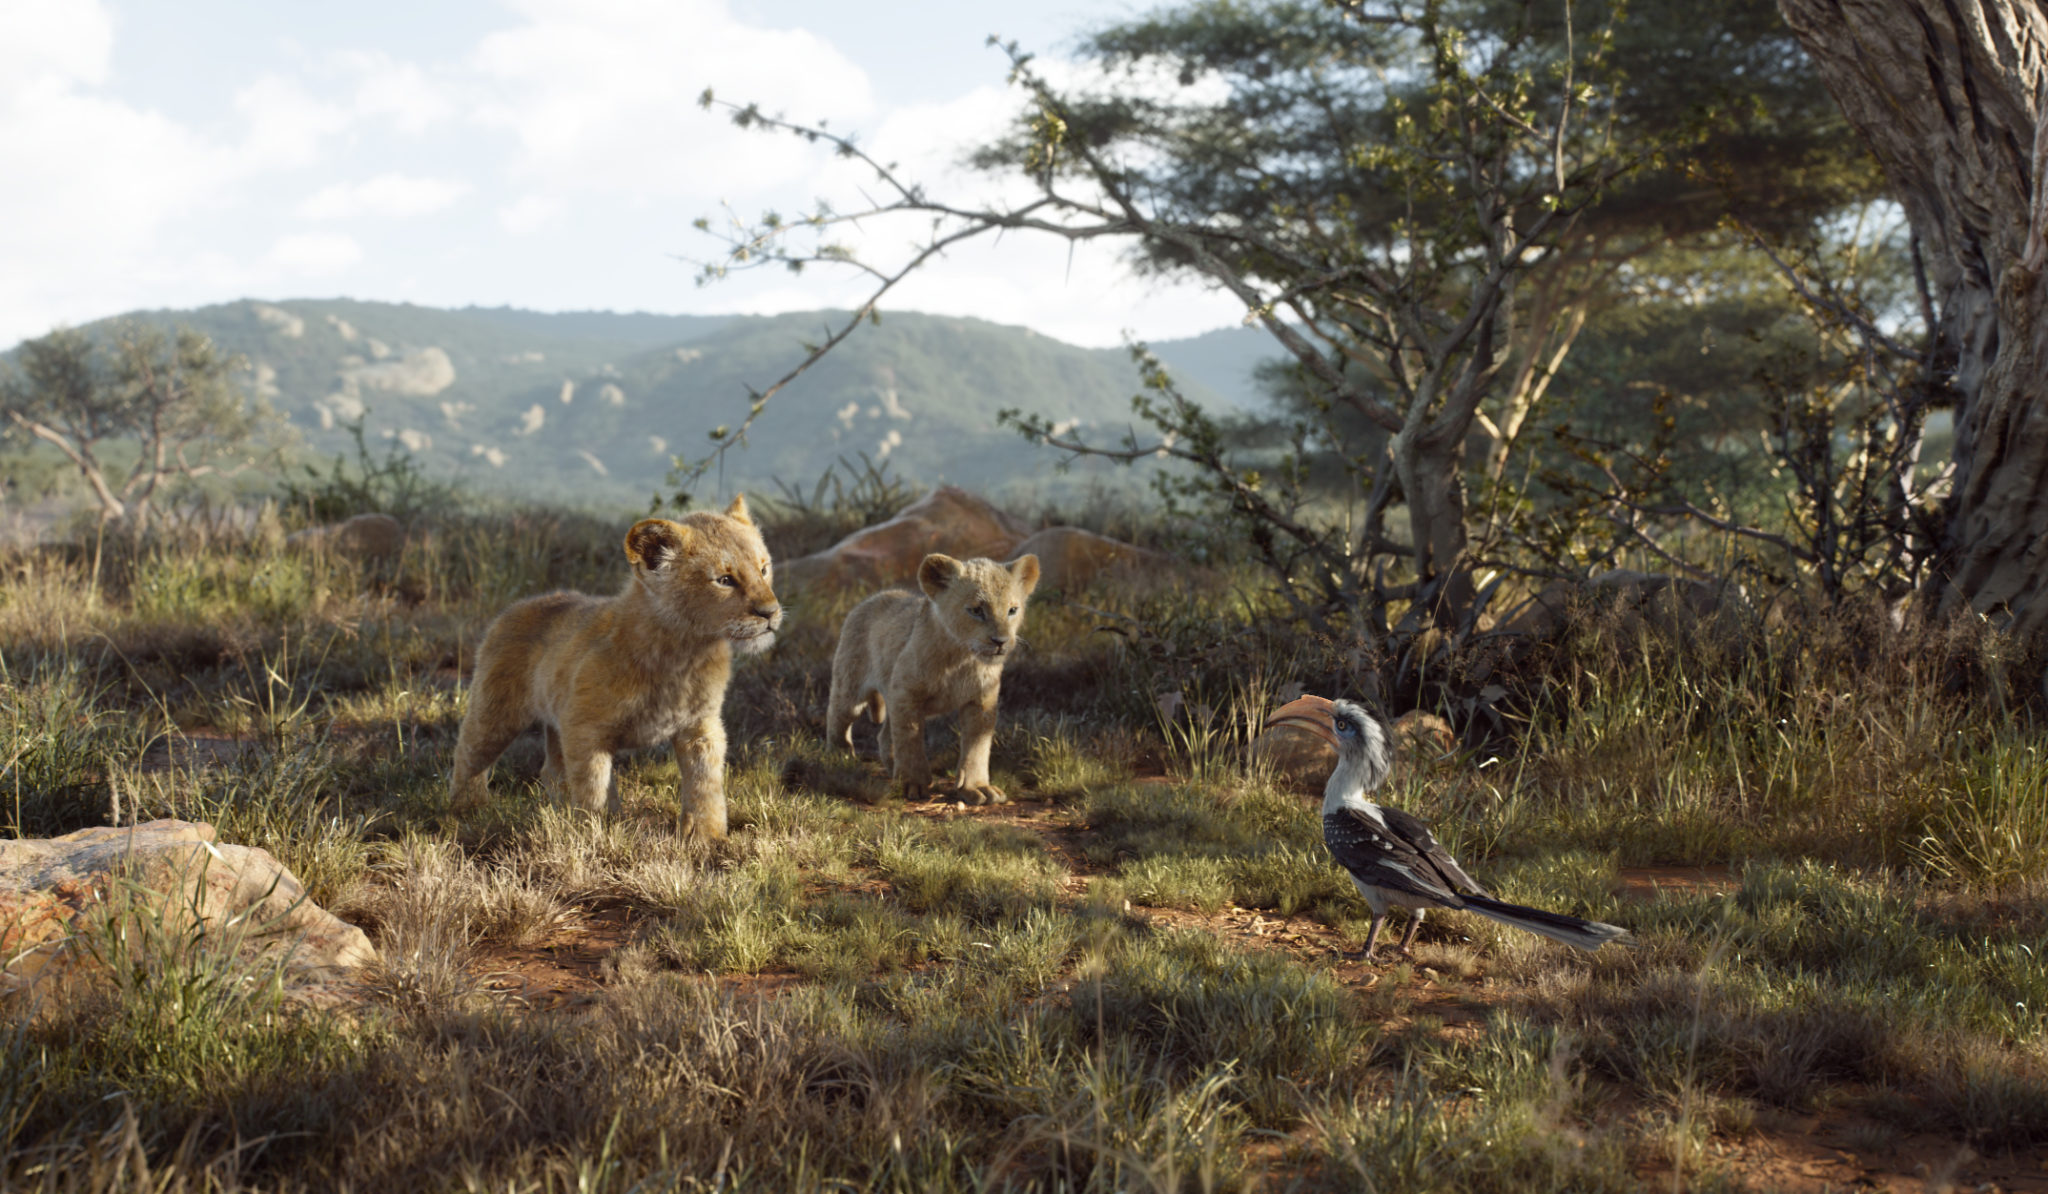 A scene from <i>The Lion King</i>